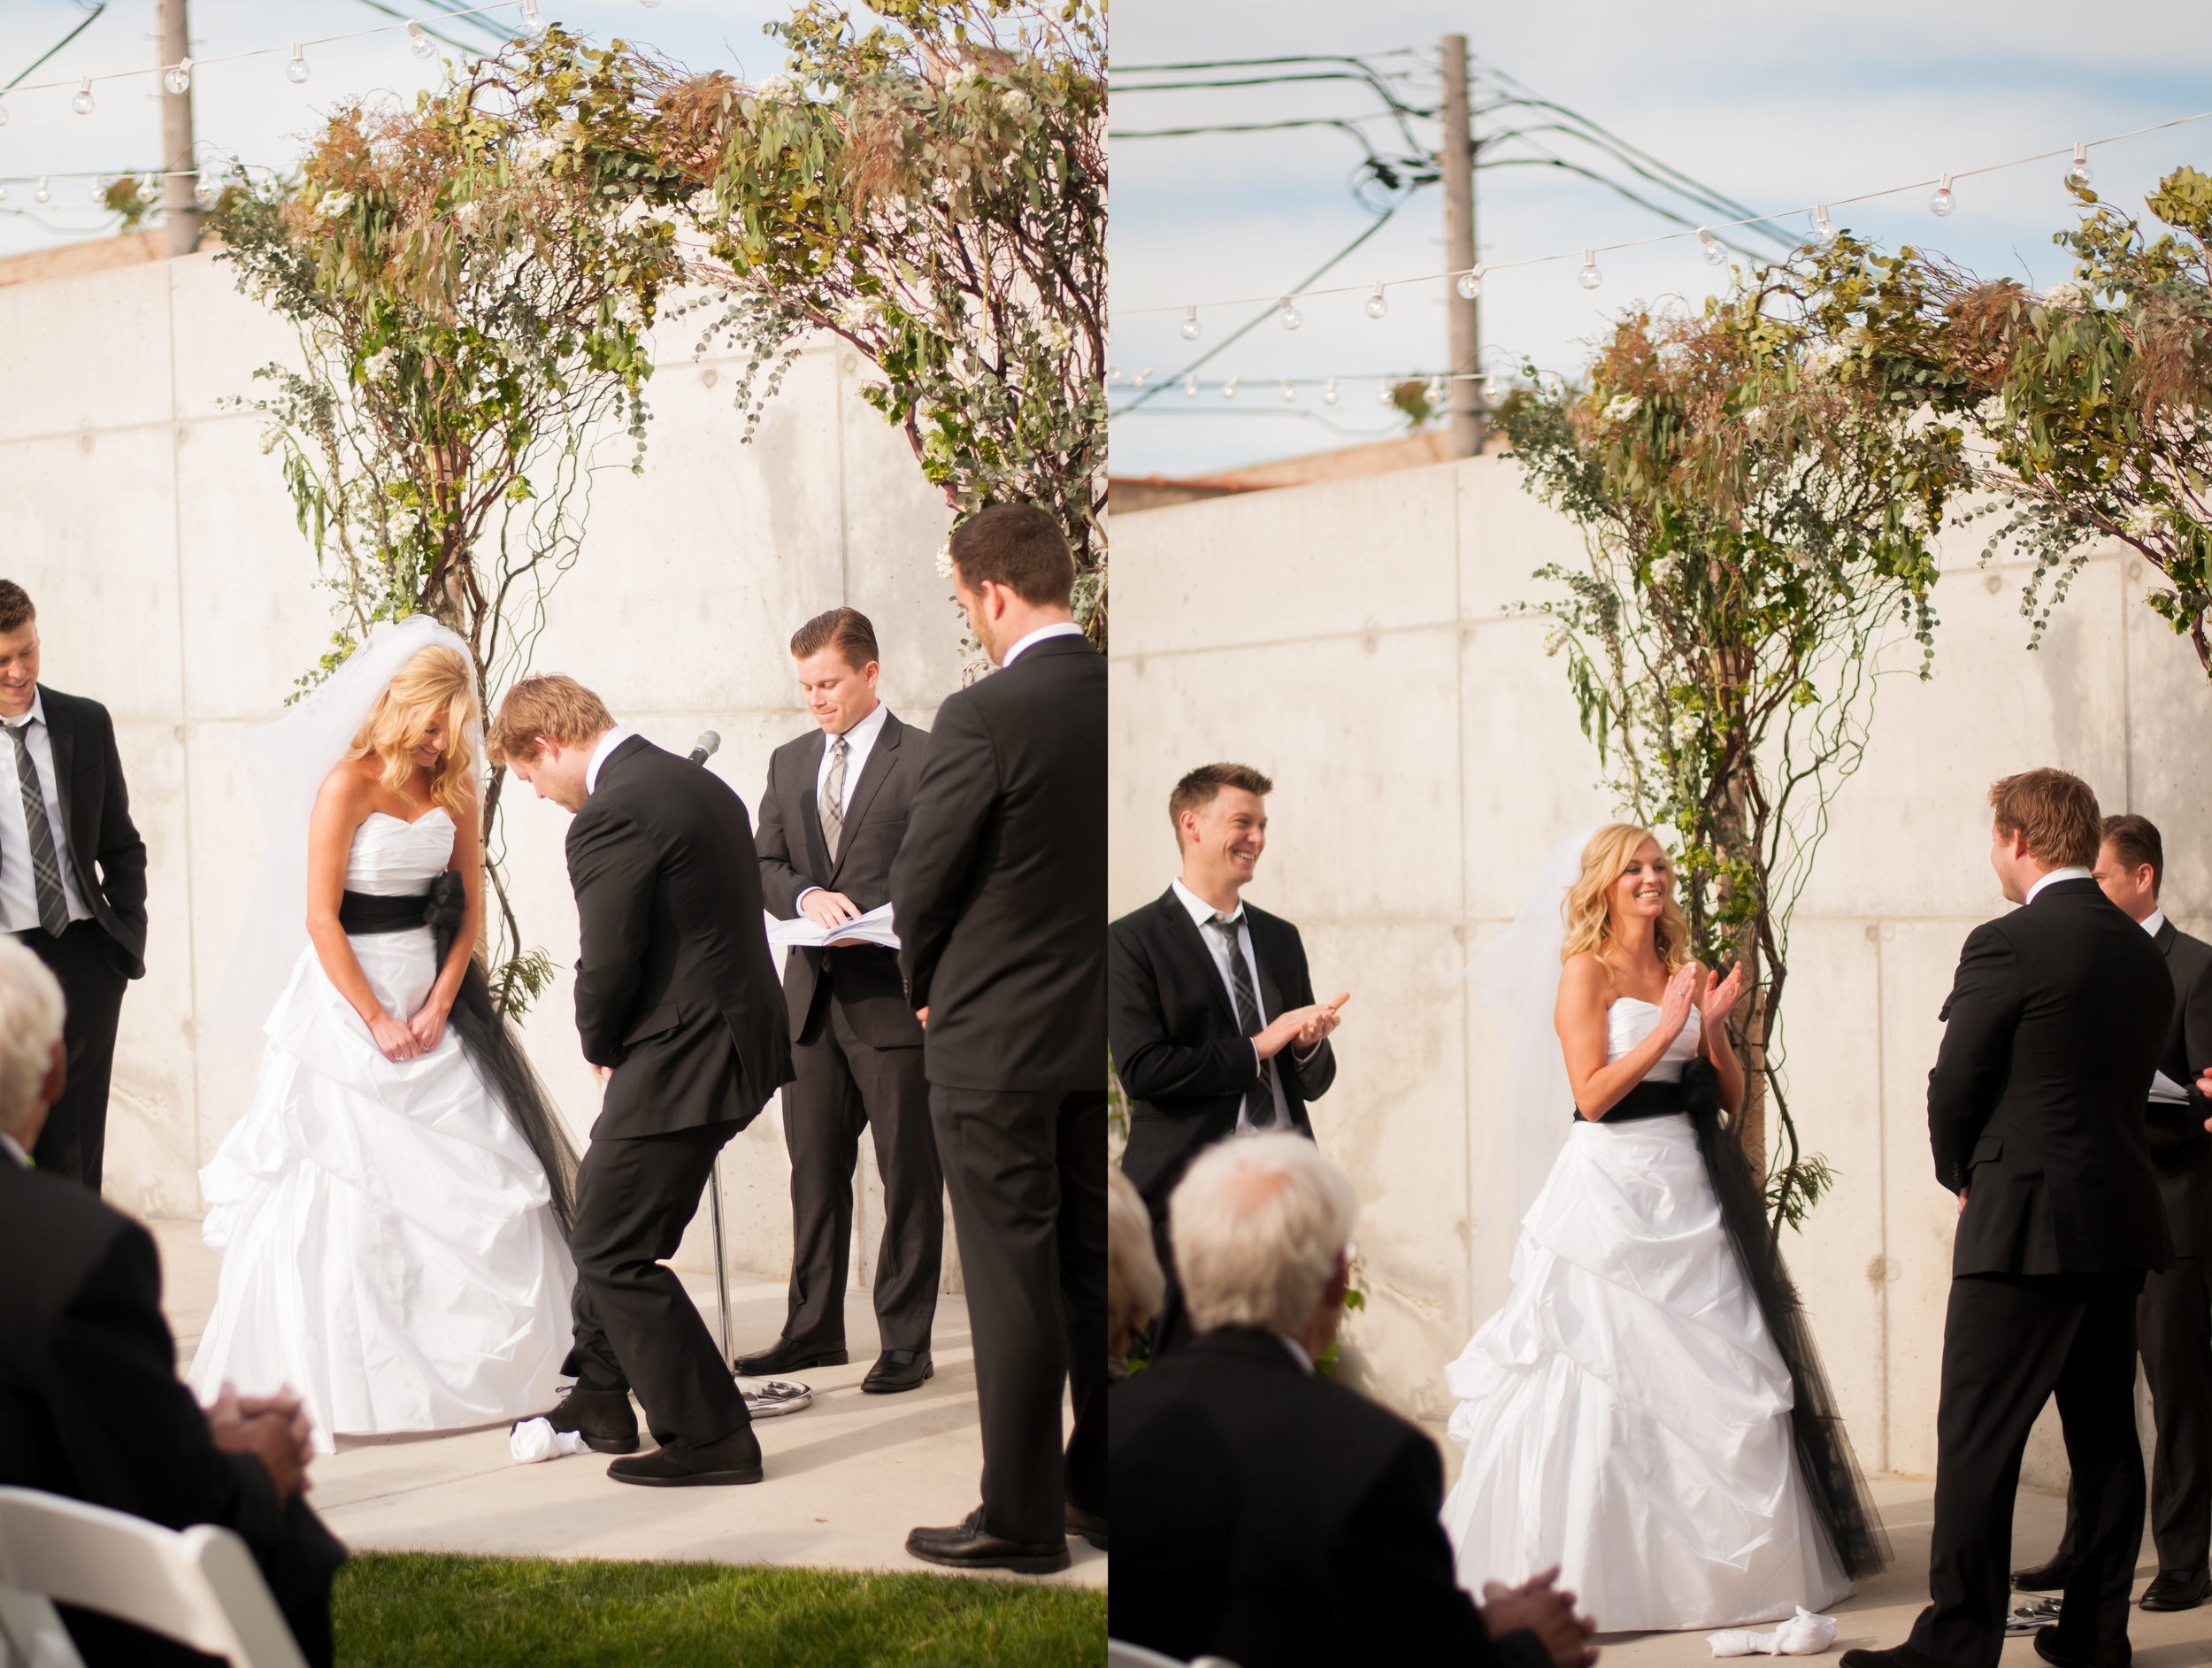 meredith donnelly photography-52.jpg